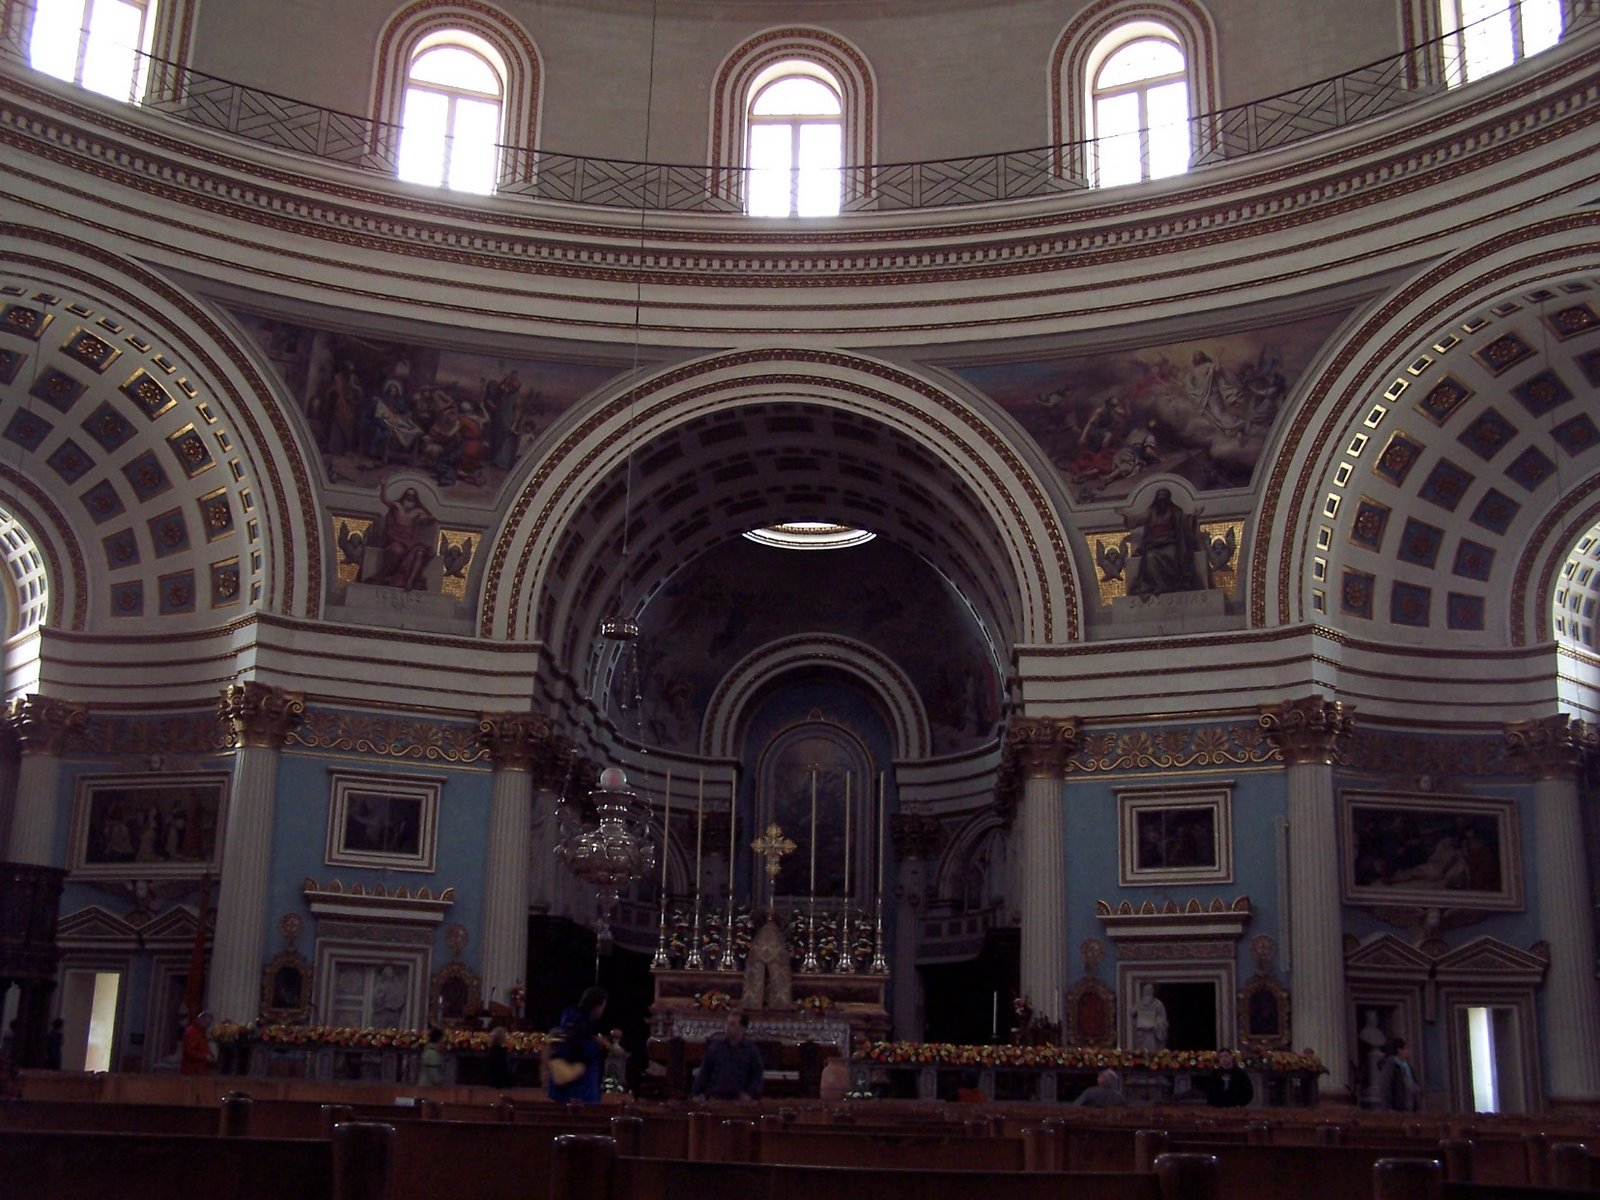 Malta, Europe, Mosta Dome interior